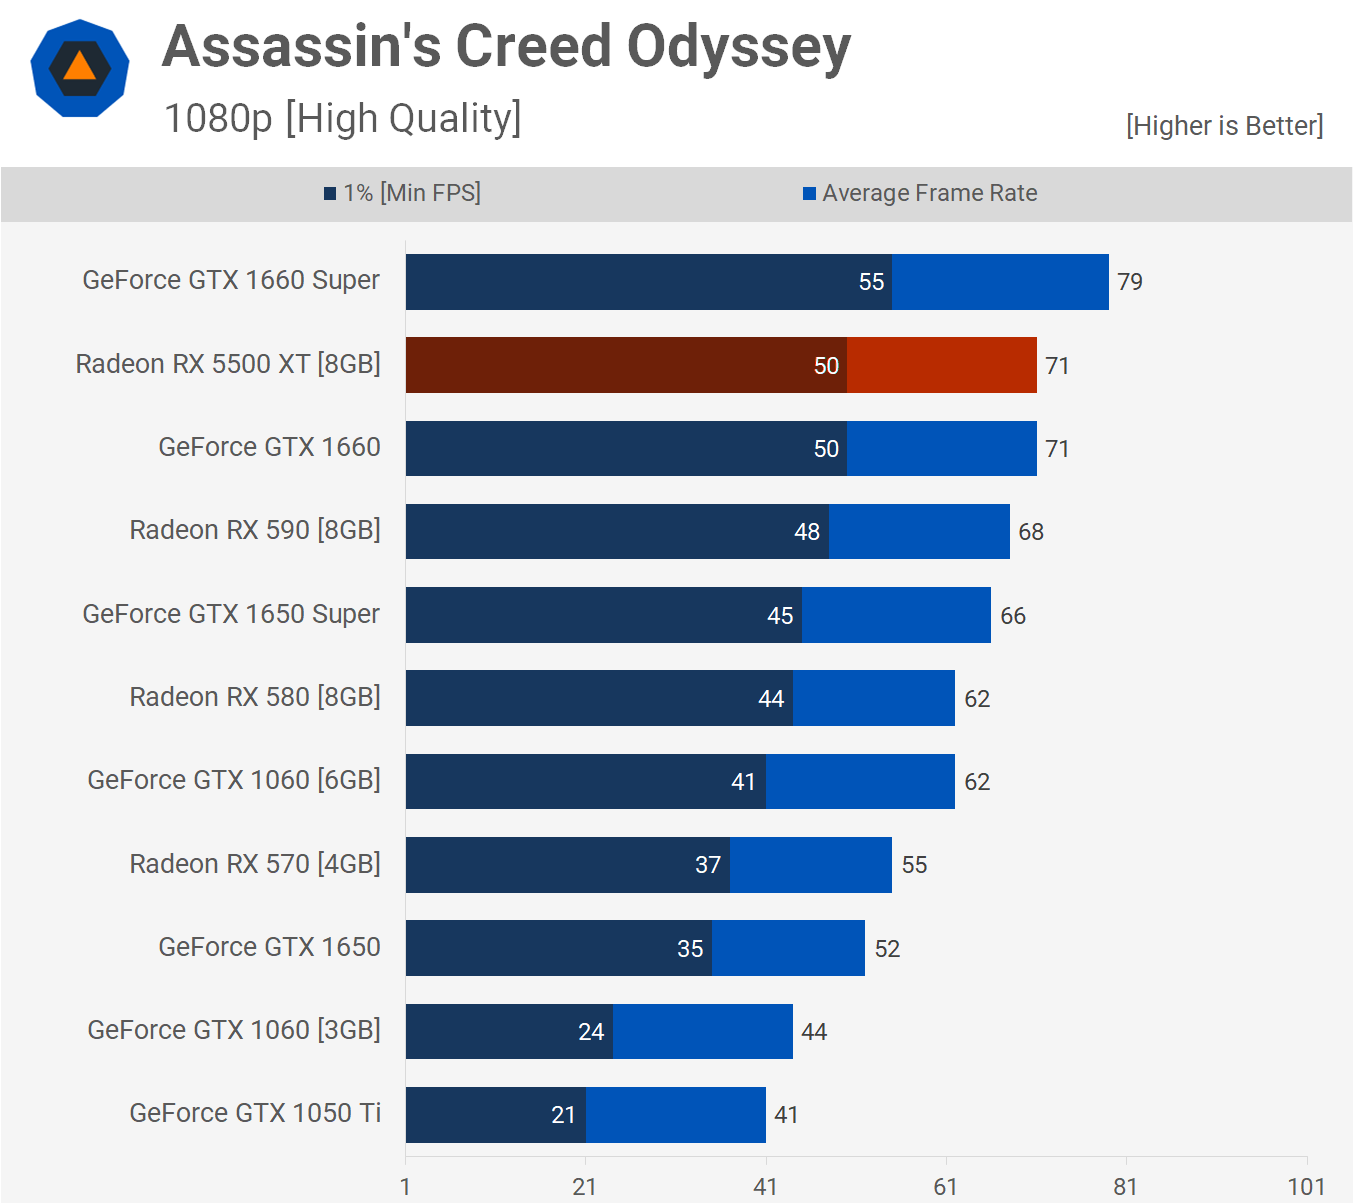 Assassin's Creed Odyssey 1080p